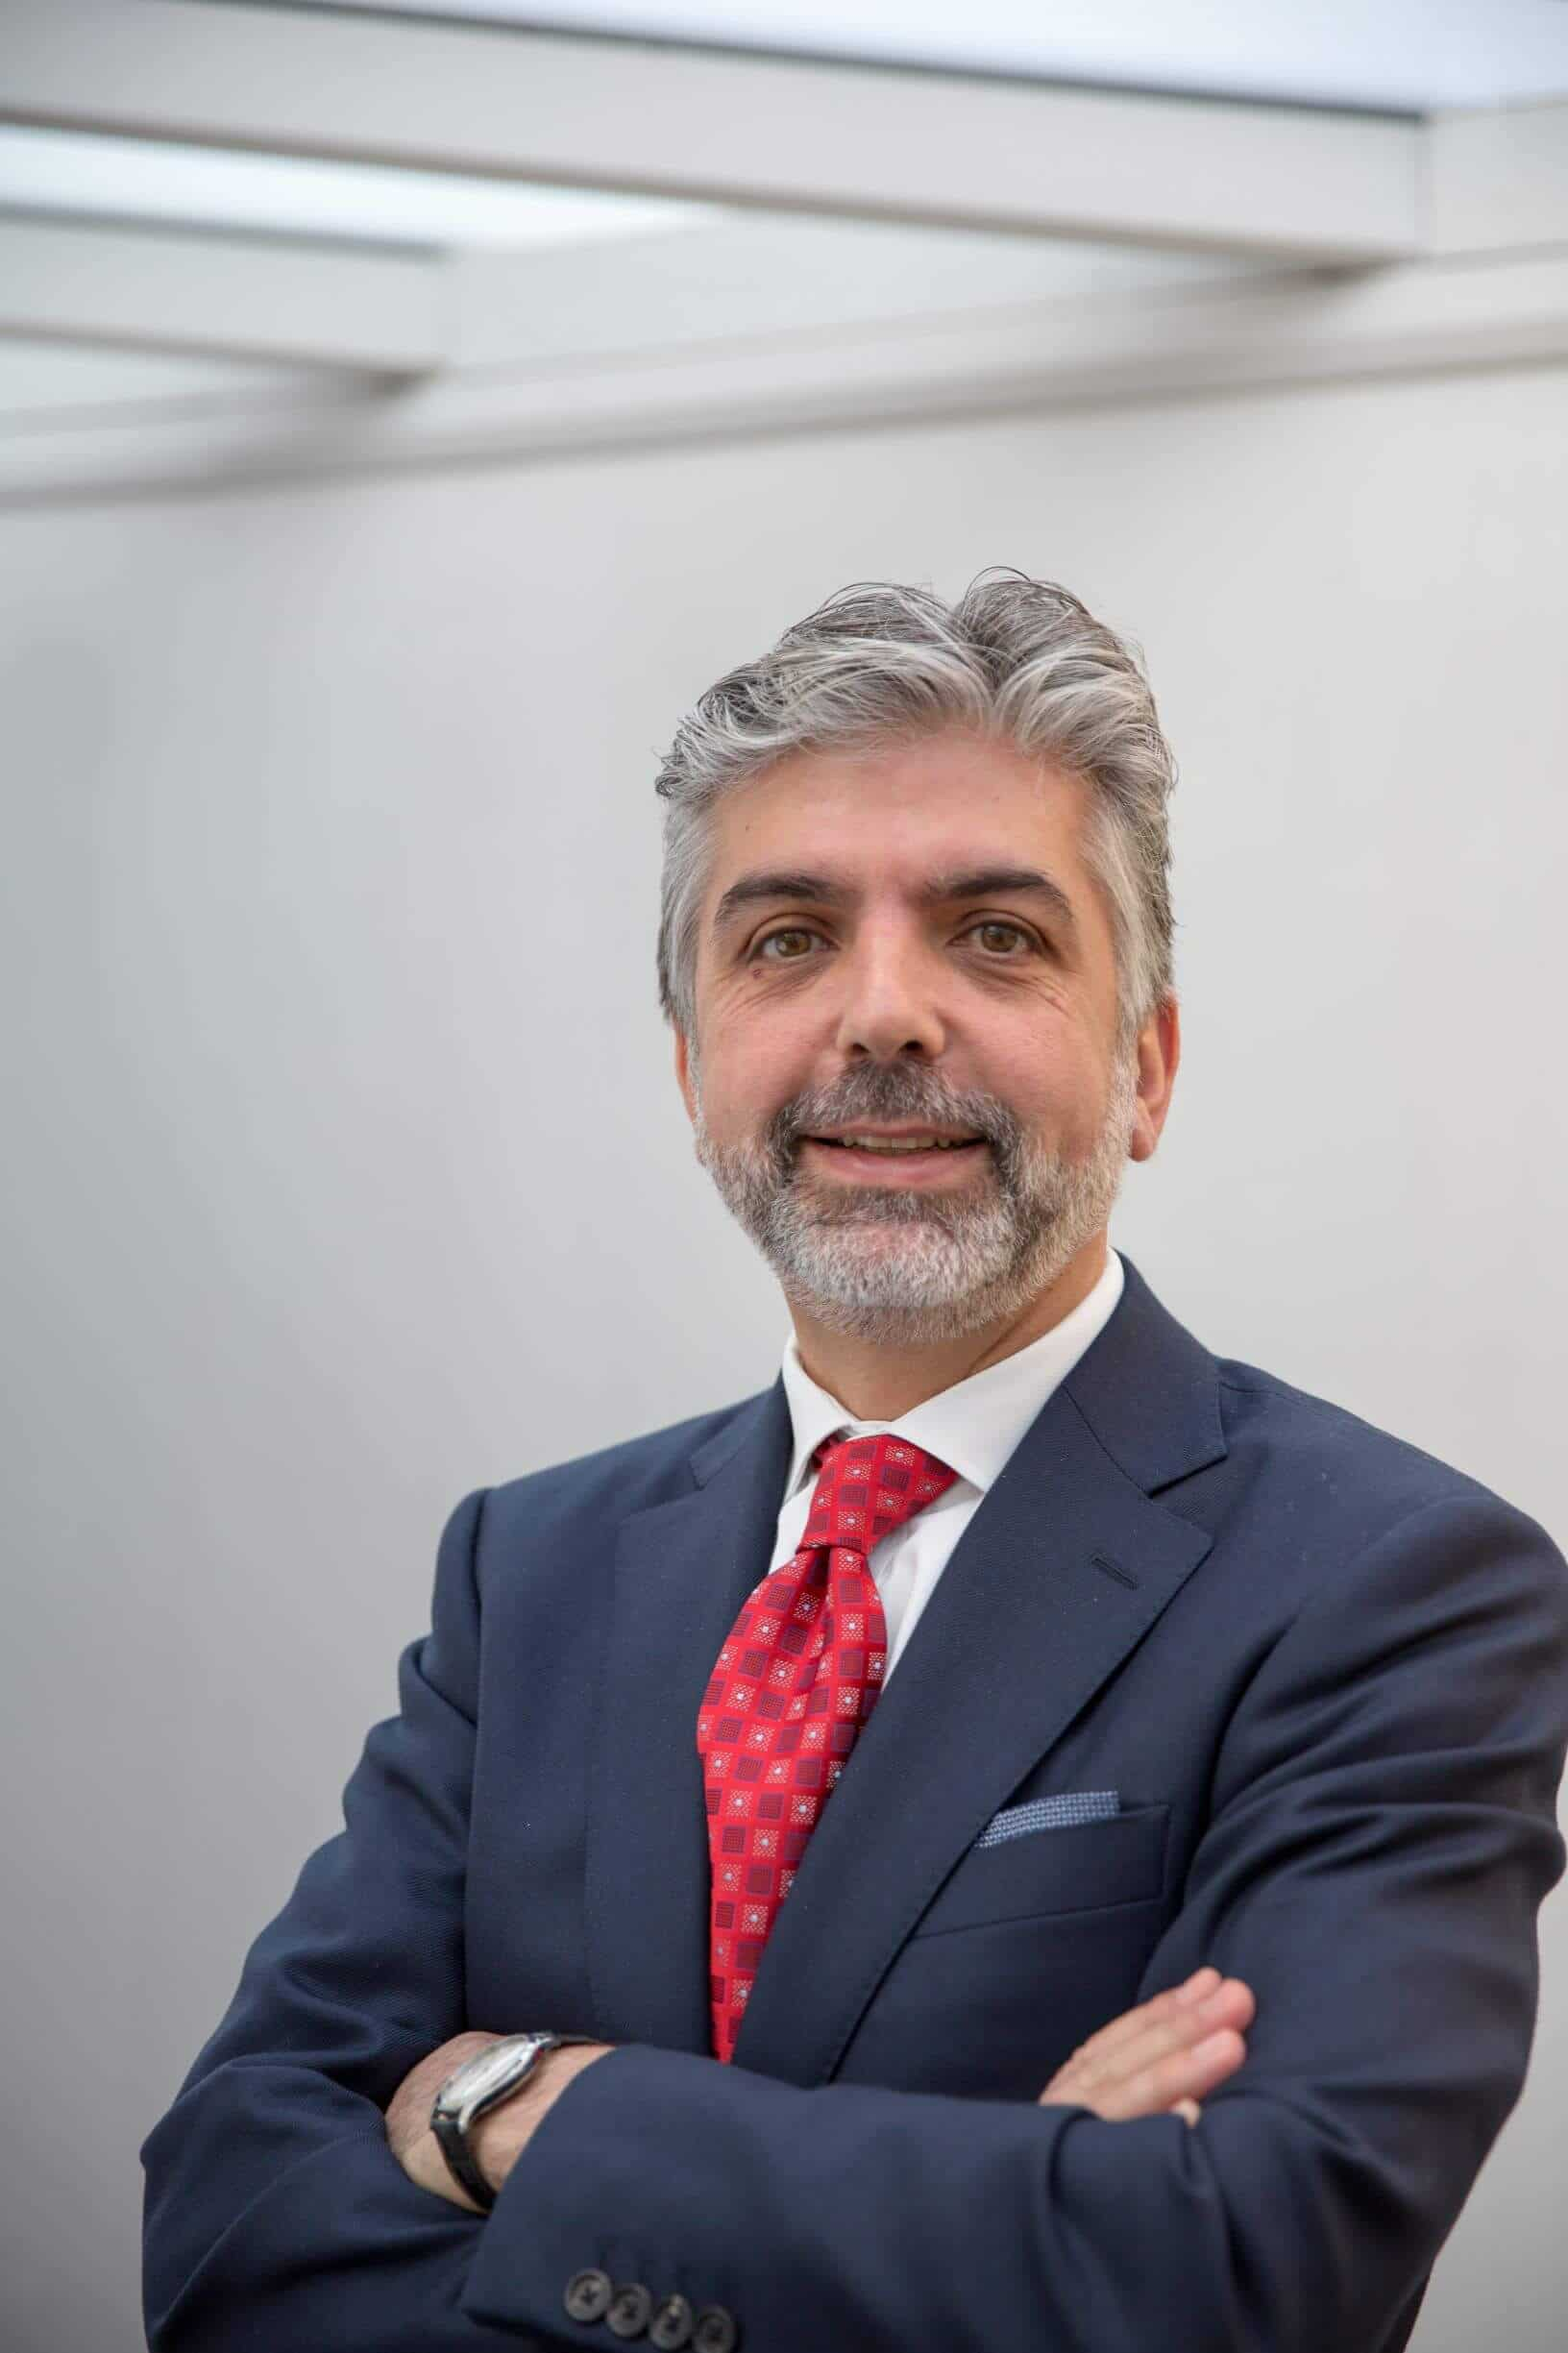 Mr Asimakopoulos Consultant Cardiac Surgeon In London